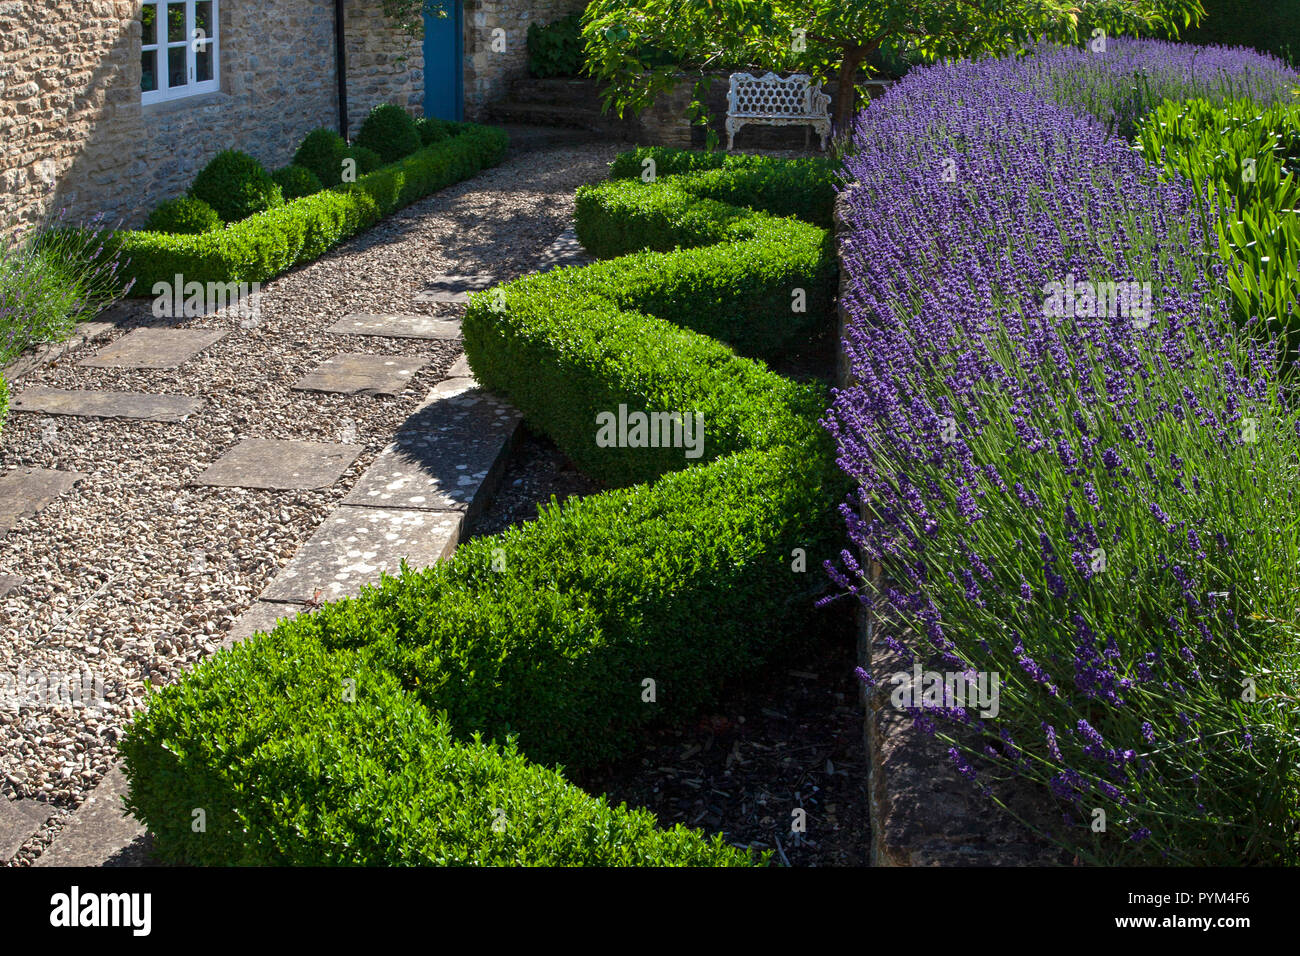 Box hedging and lavender in front English Garden,England,Europe - Stock Image